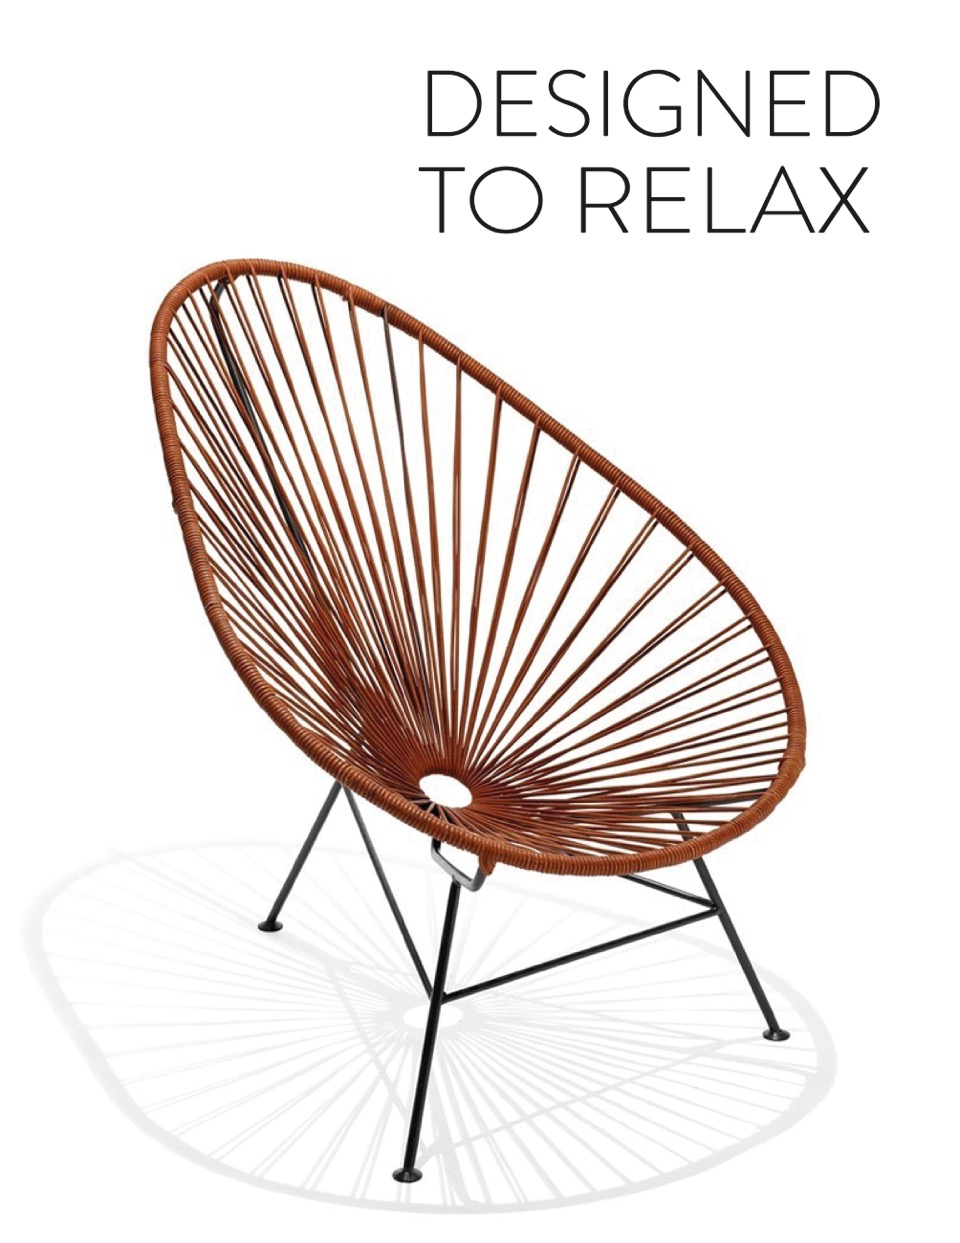 Designed to relax.jpeg